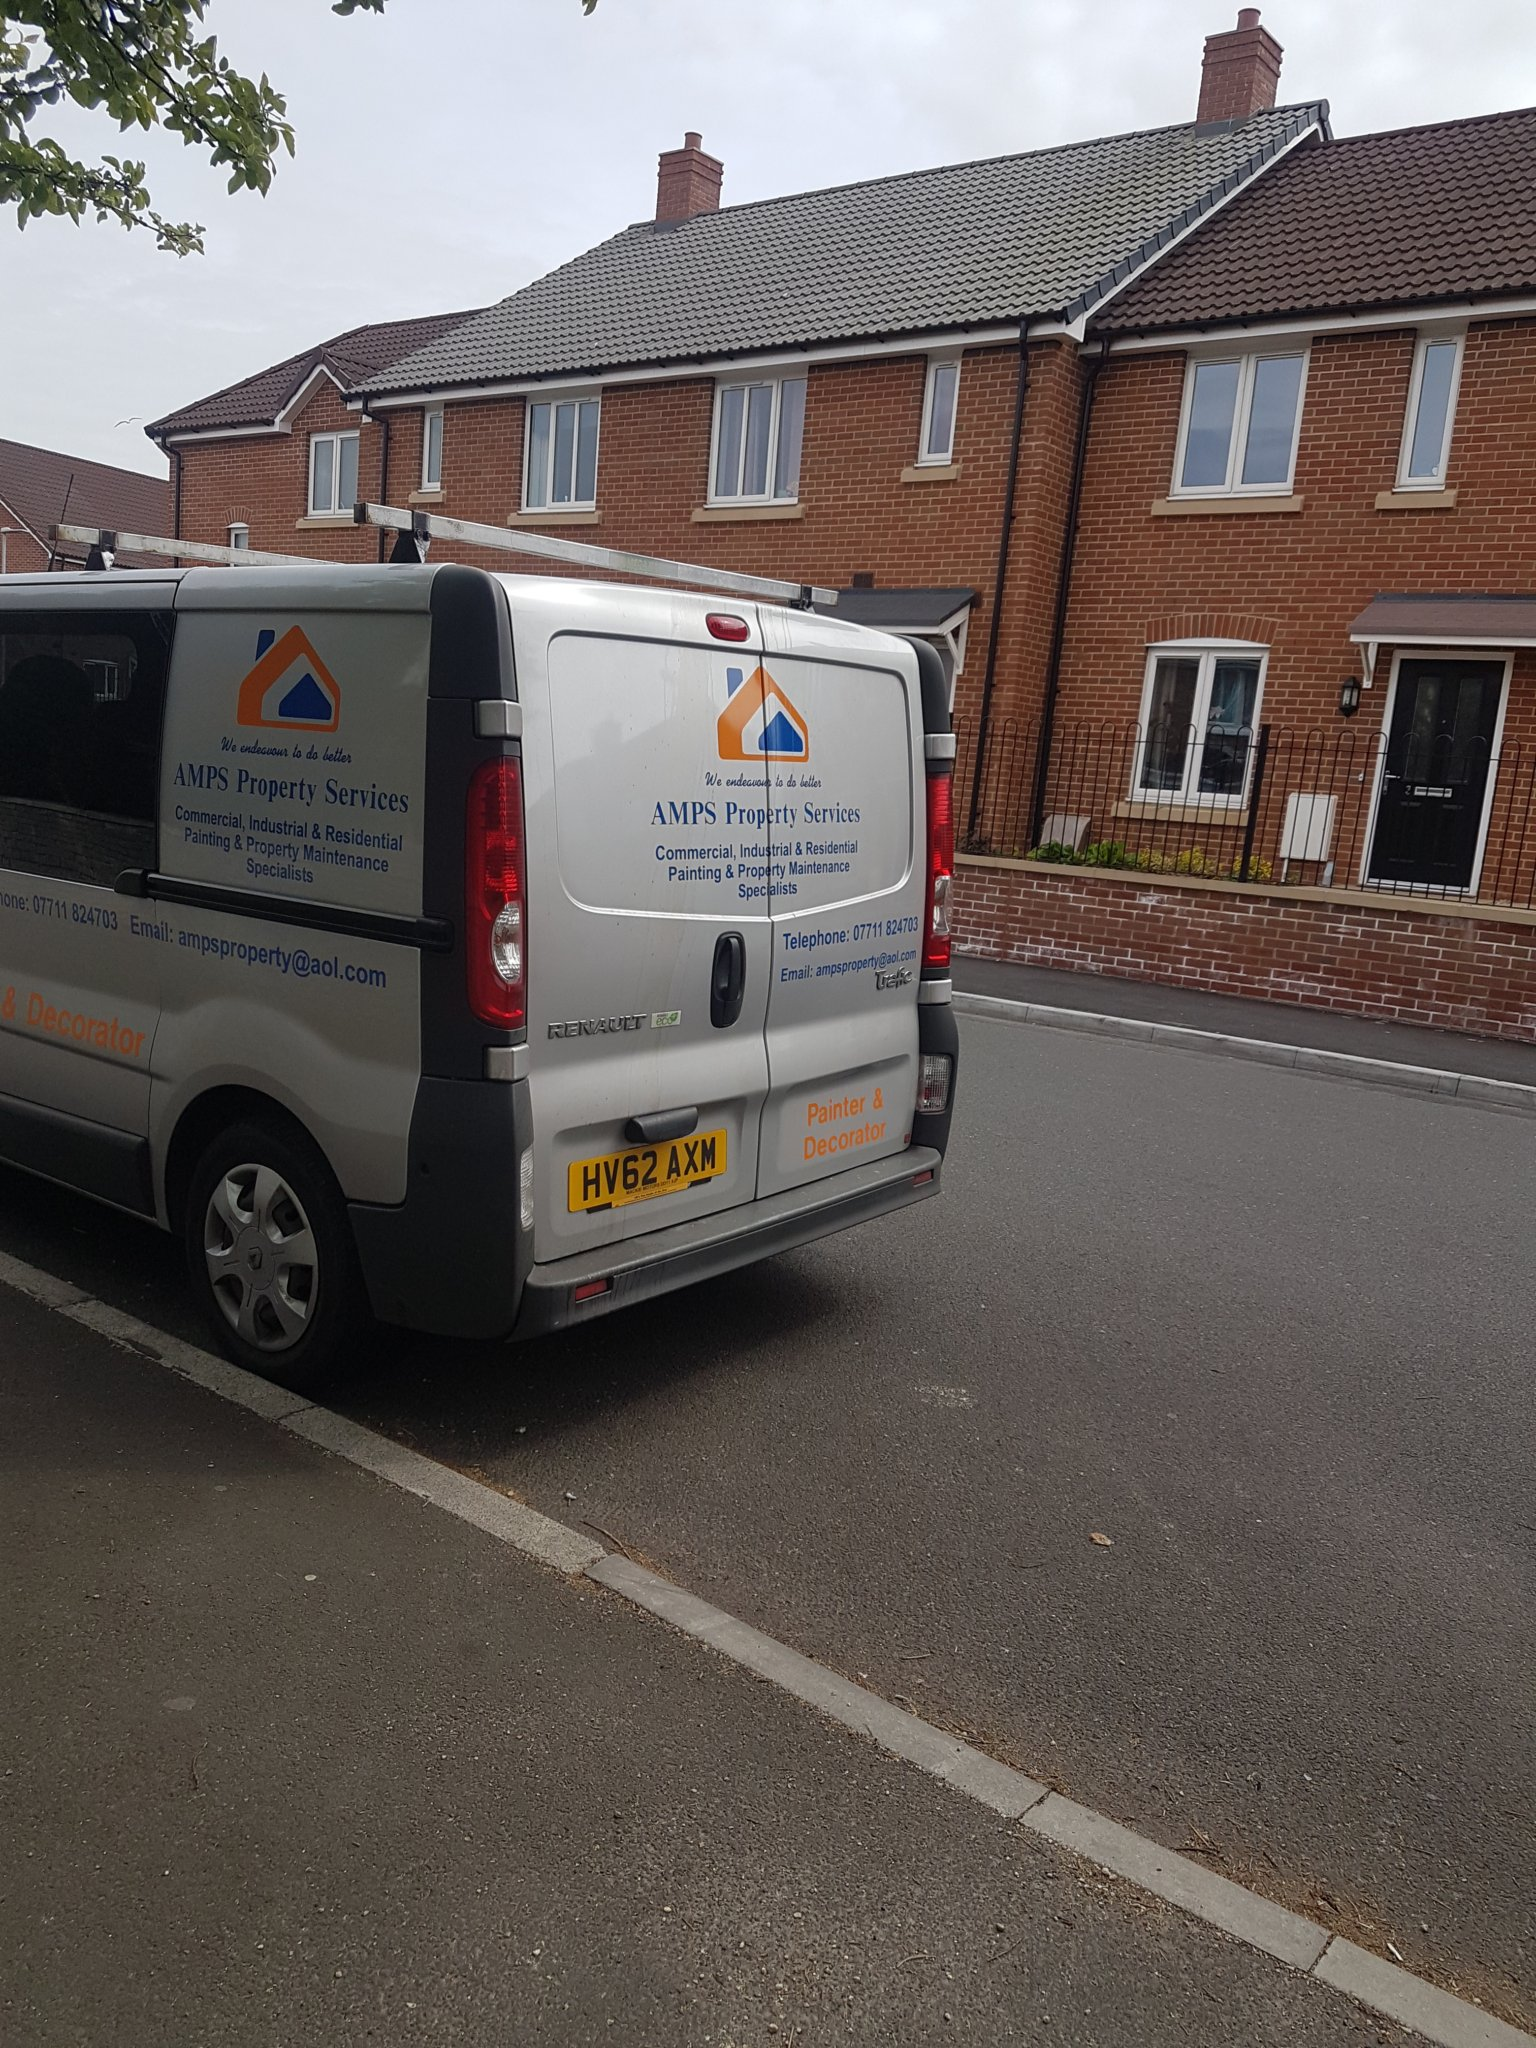 AMPS Property Services